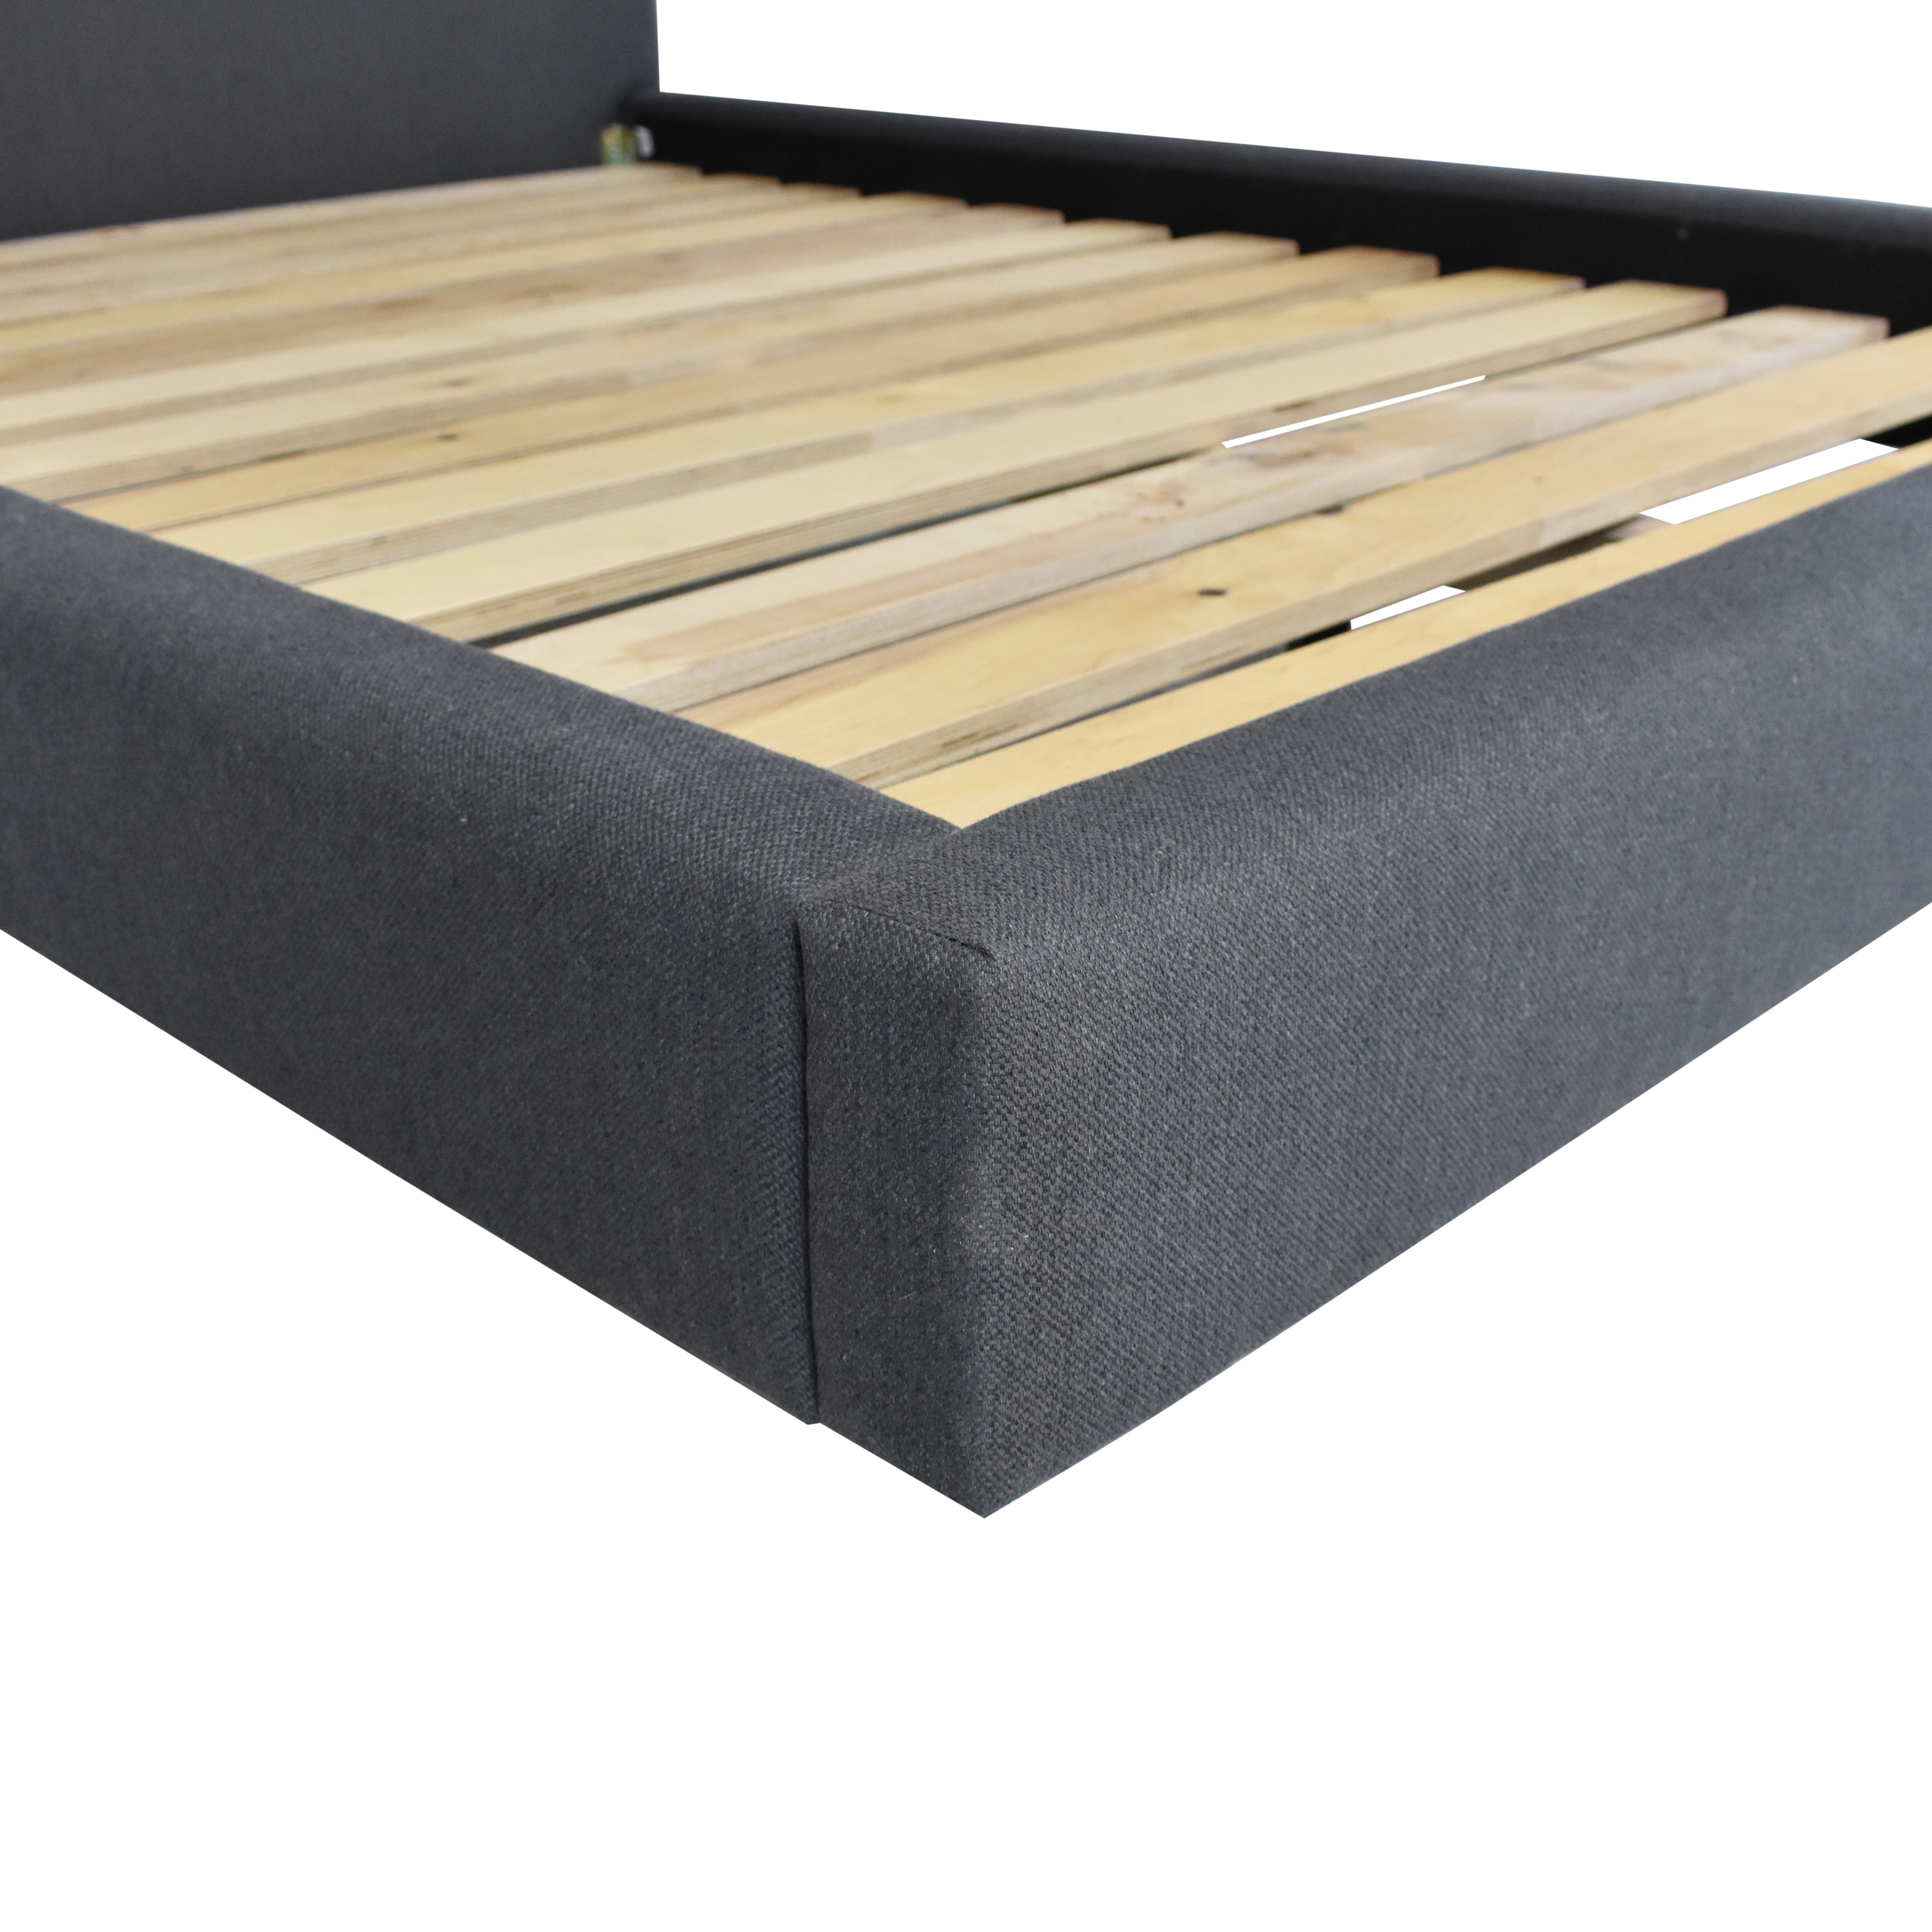 Crate & Barrel Tate Full Upholstered Bed / Beds